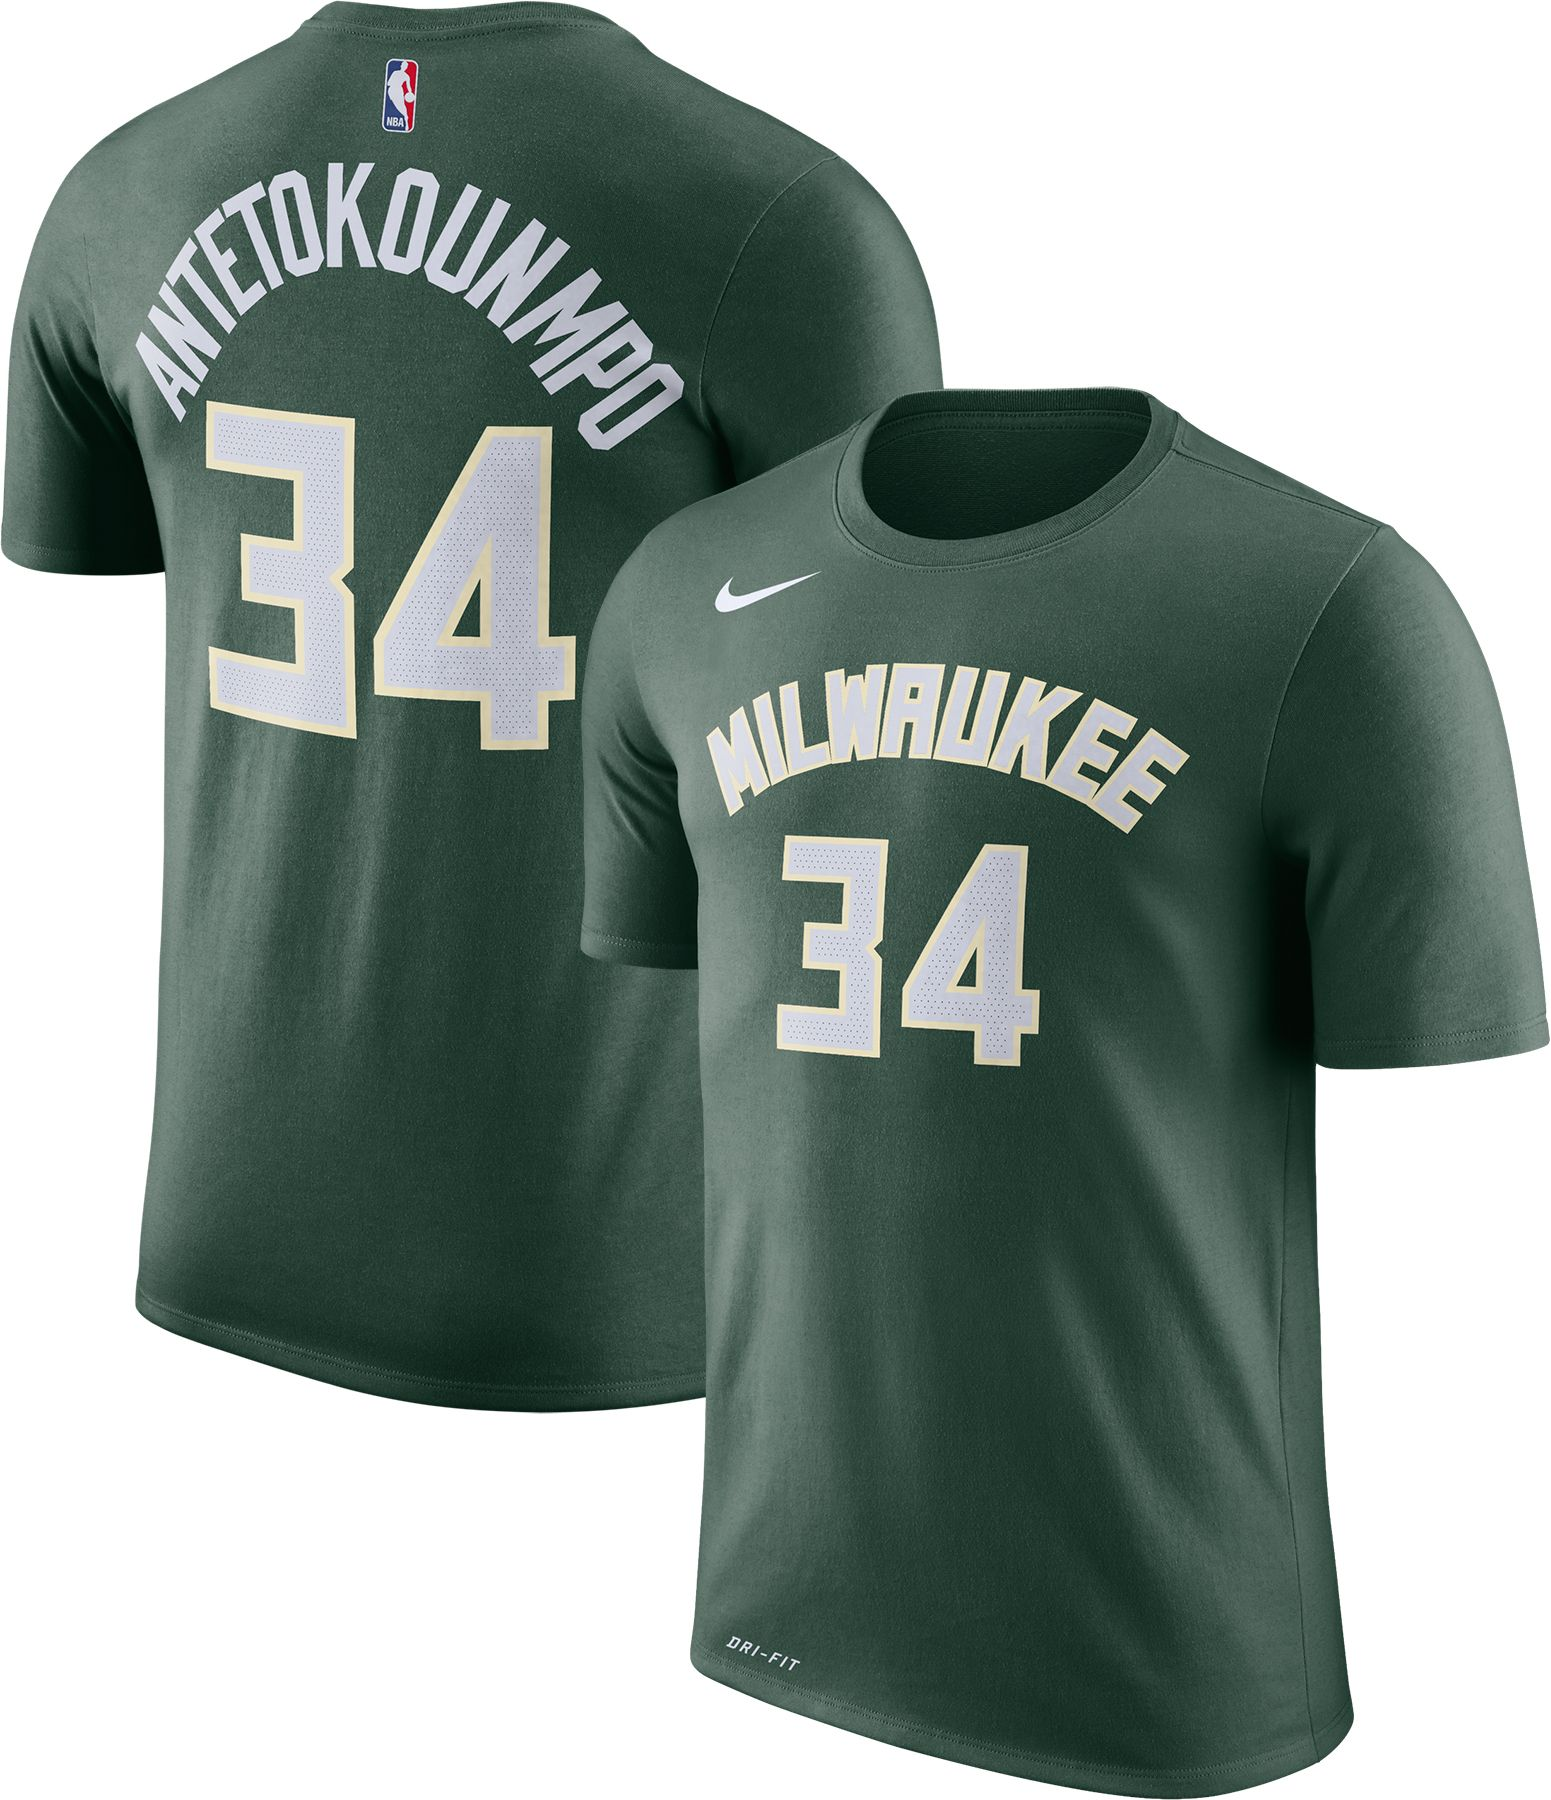 14e8c03f8 ... Nike Youth Milwaukee Bucks Giannis Antetokounmpo 34 Dri-FIT Green T- Youth  Milwaukee Bucks Giannis Antetokounmpo adidas White Home Replica Jersey ...